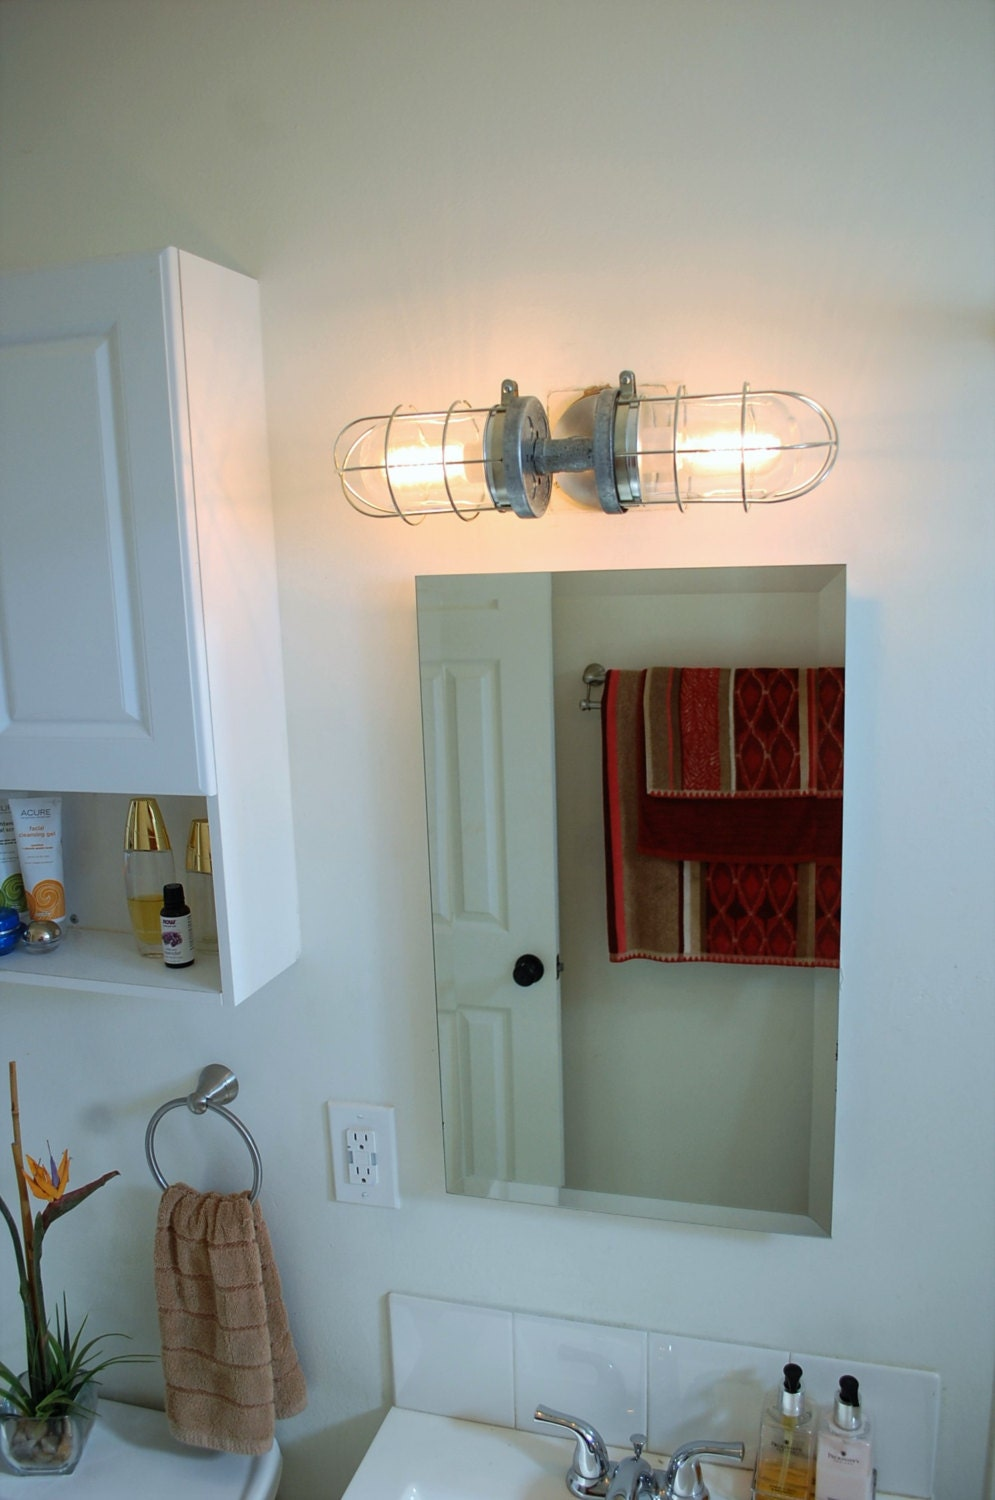 ?zoom & Industrial wall sconce bathroom light double cage wall light azcodes.com